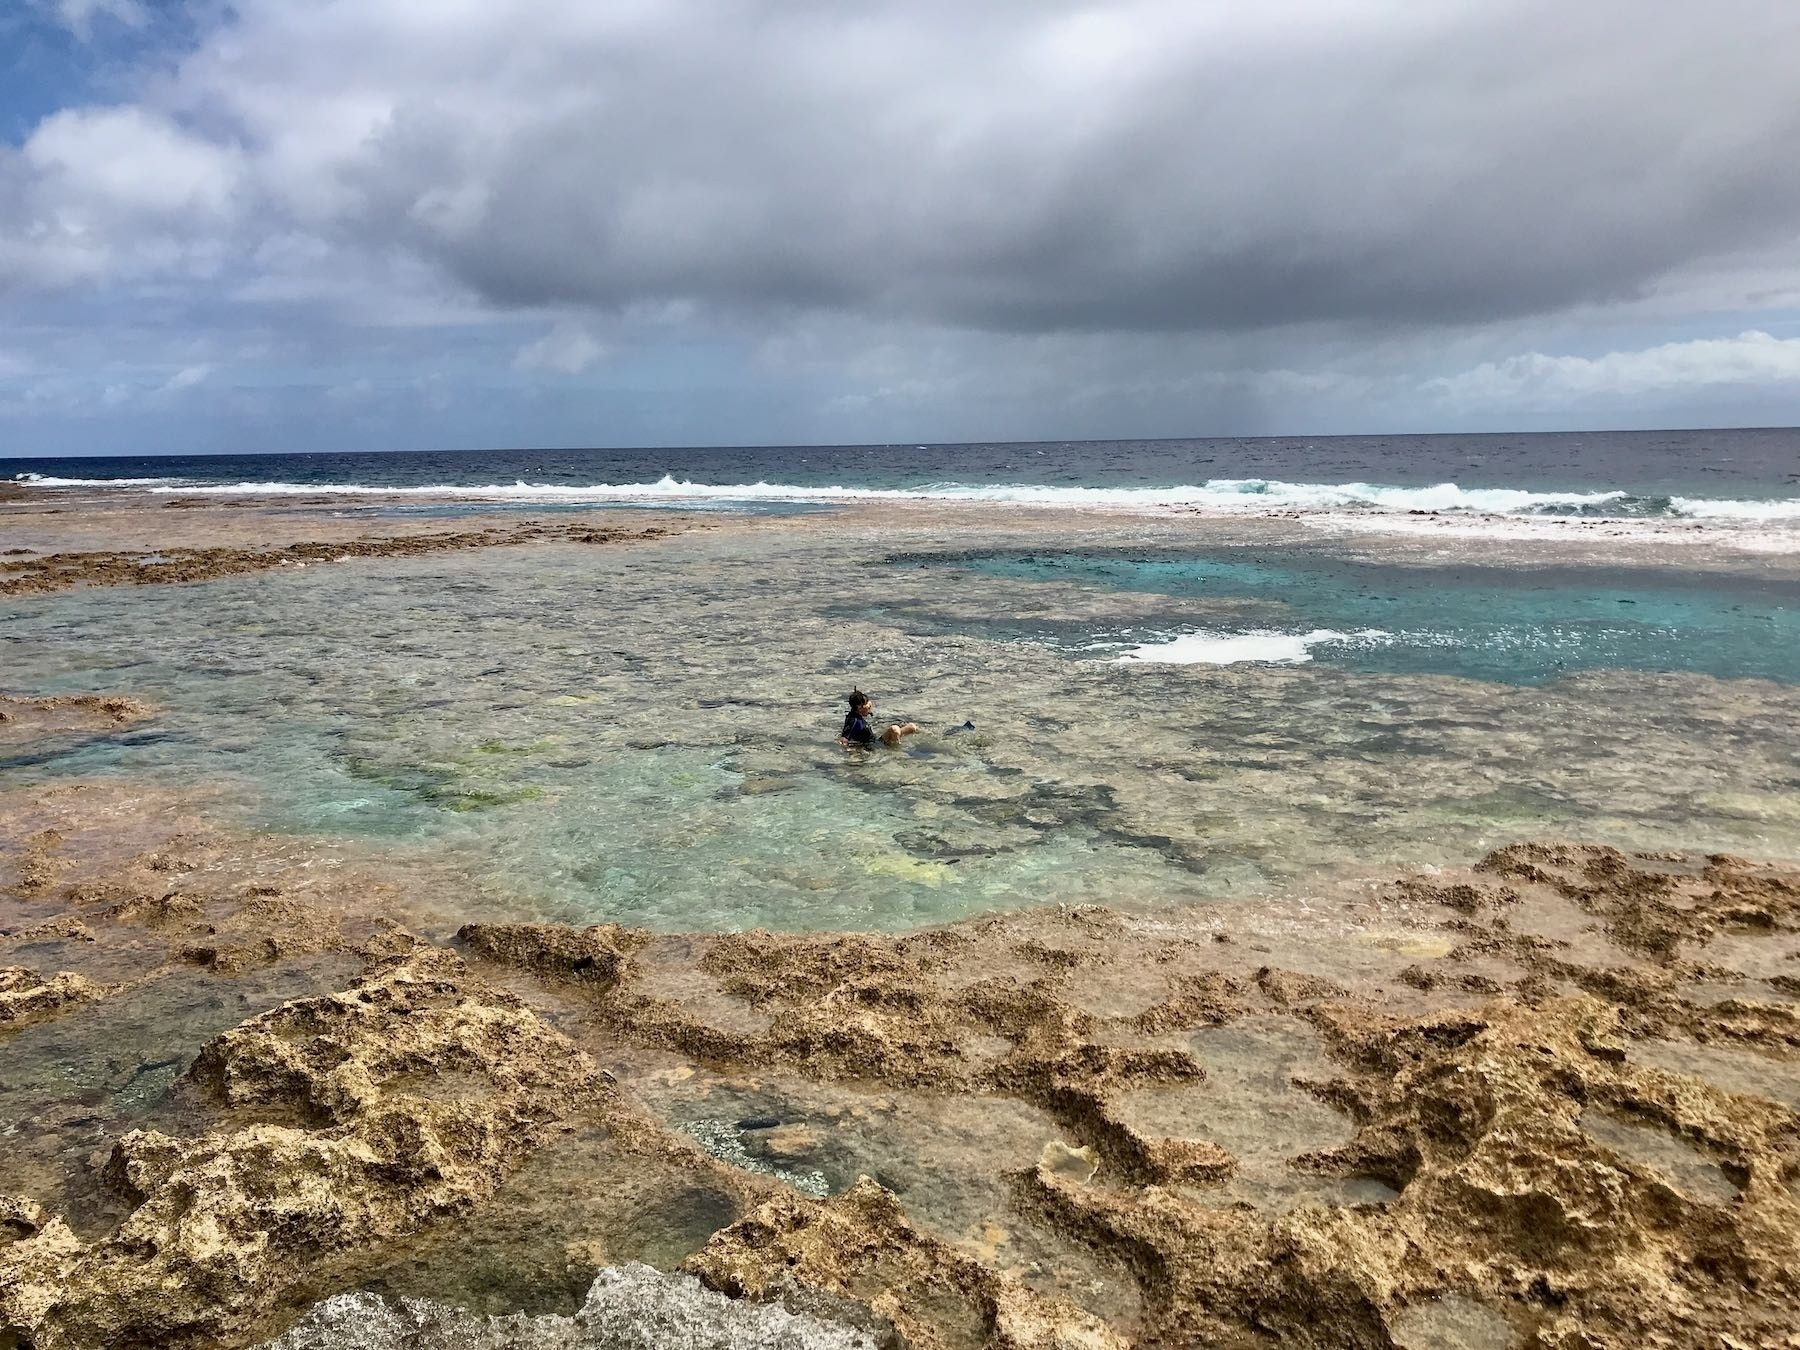 A person in the water on the reef.